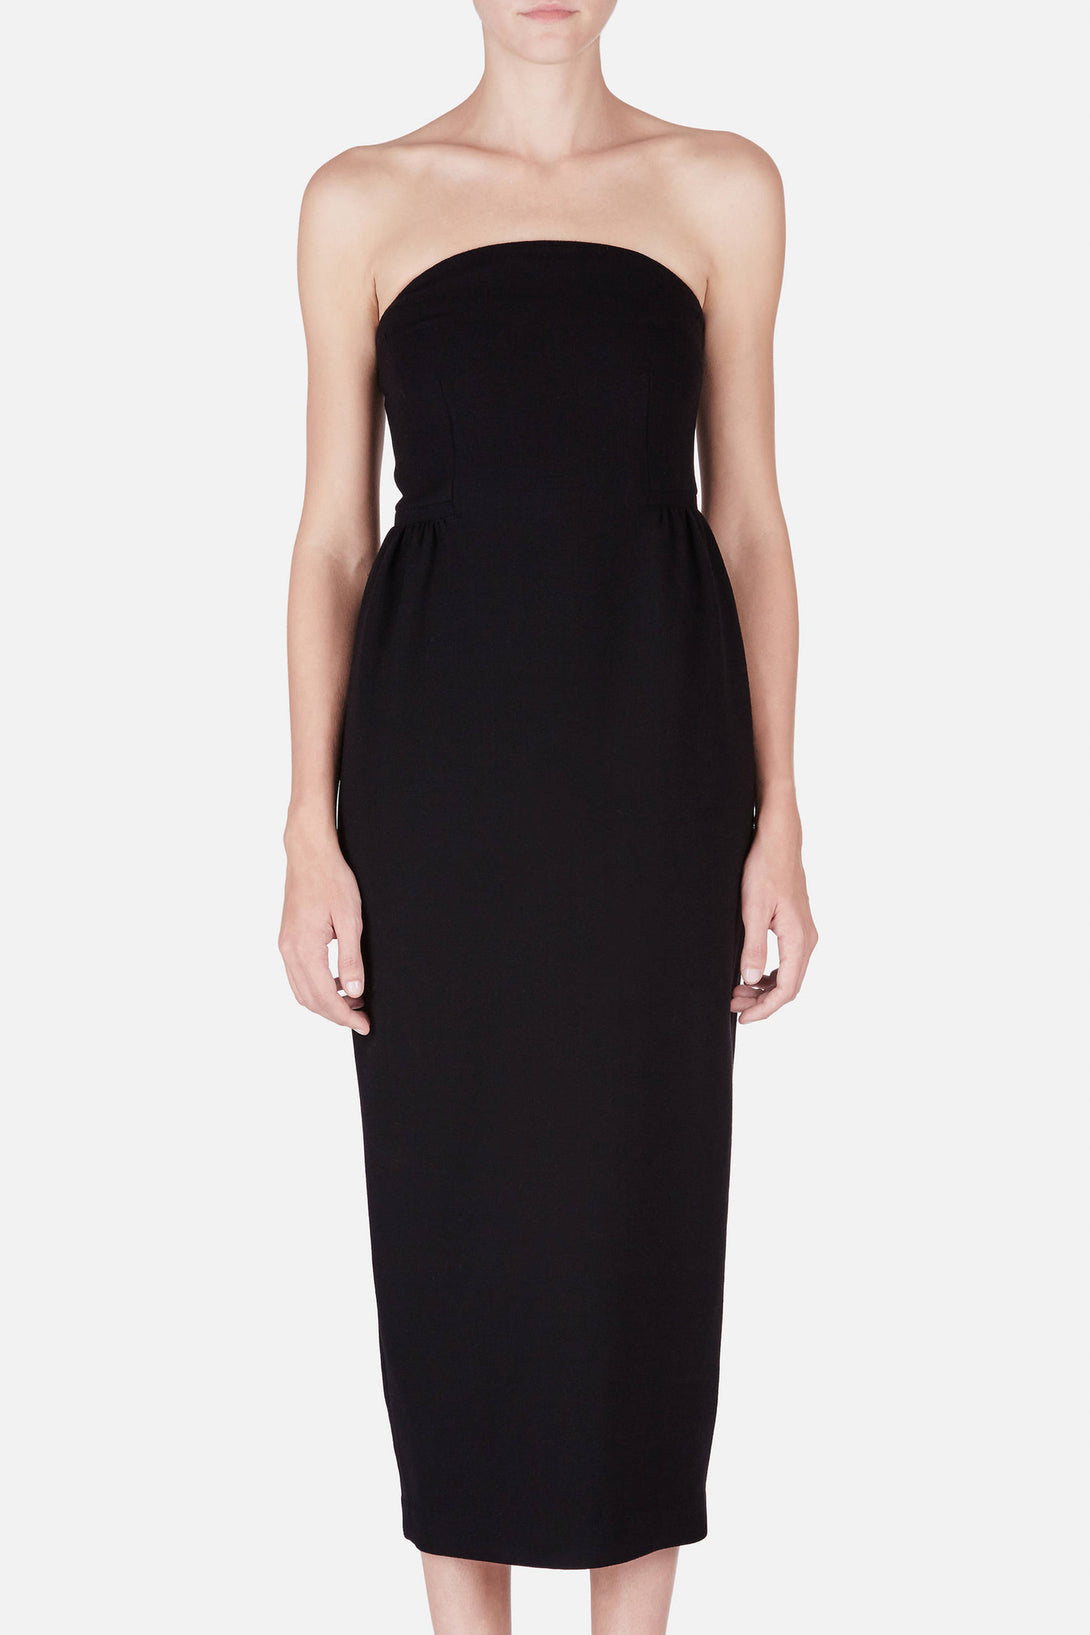 Dress 17 Strapless Nipped Waist Dress - Black